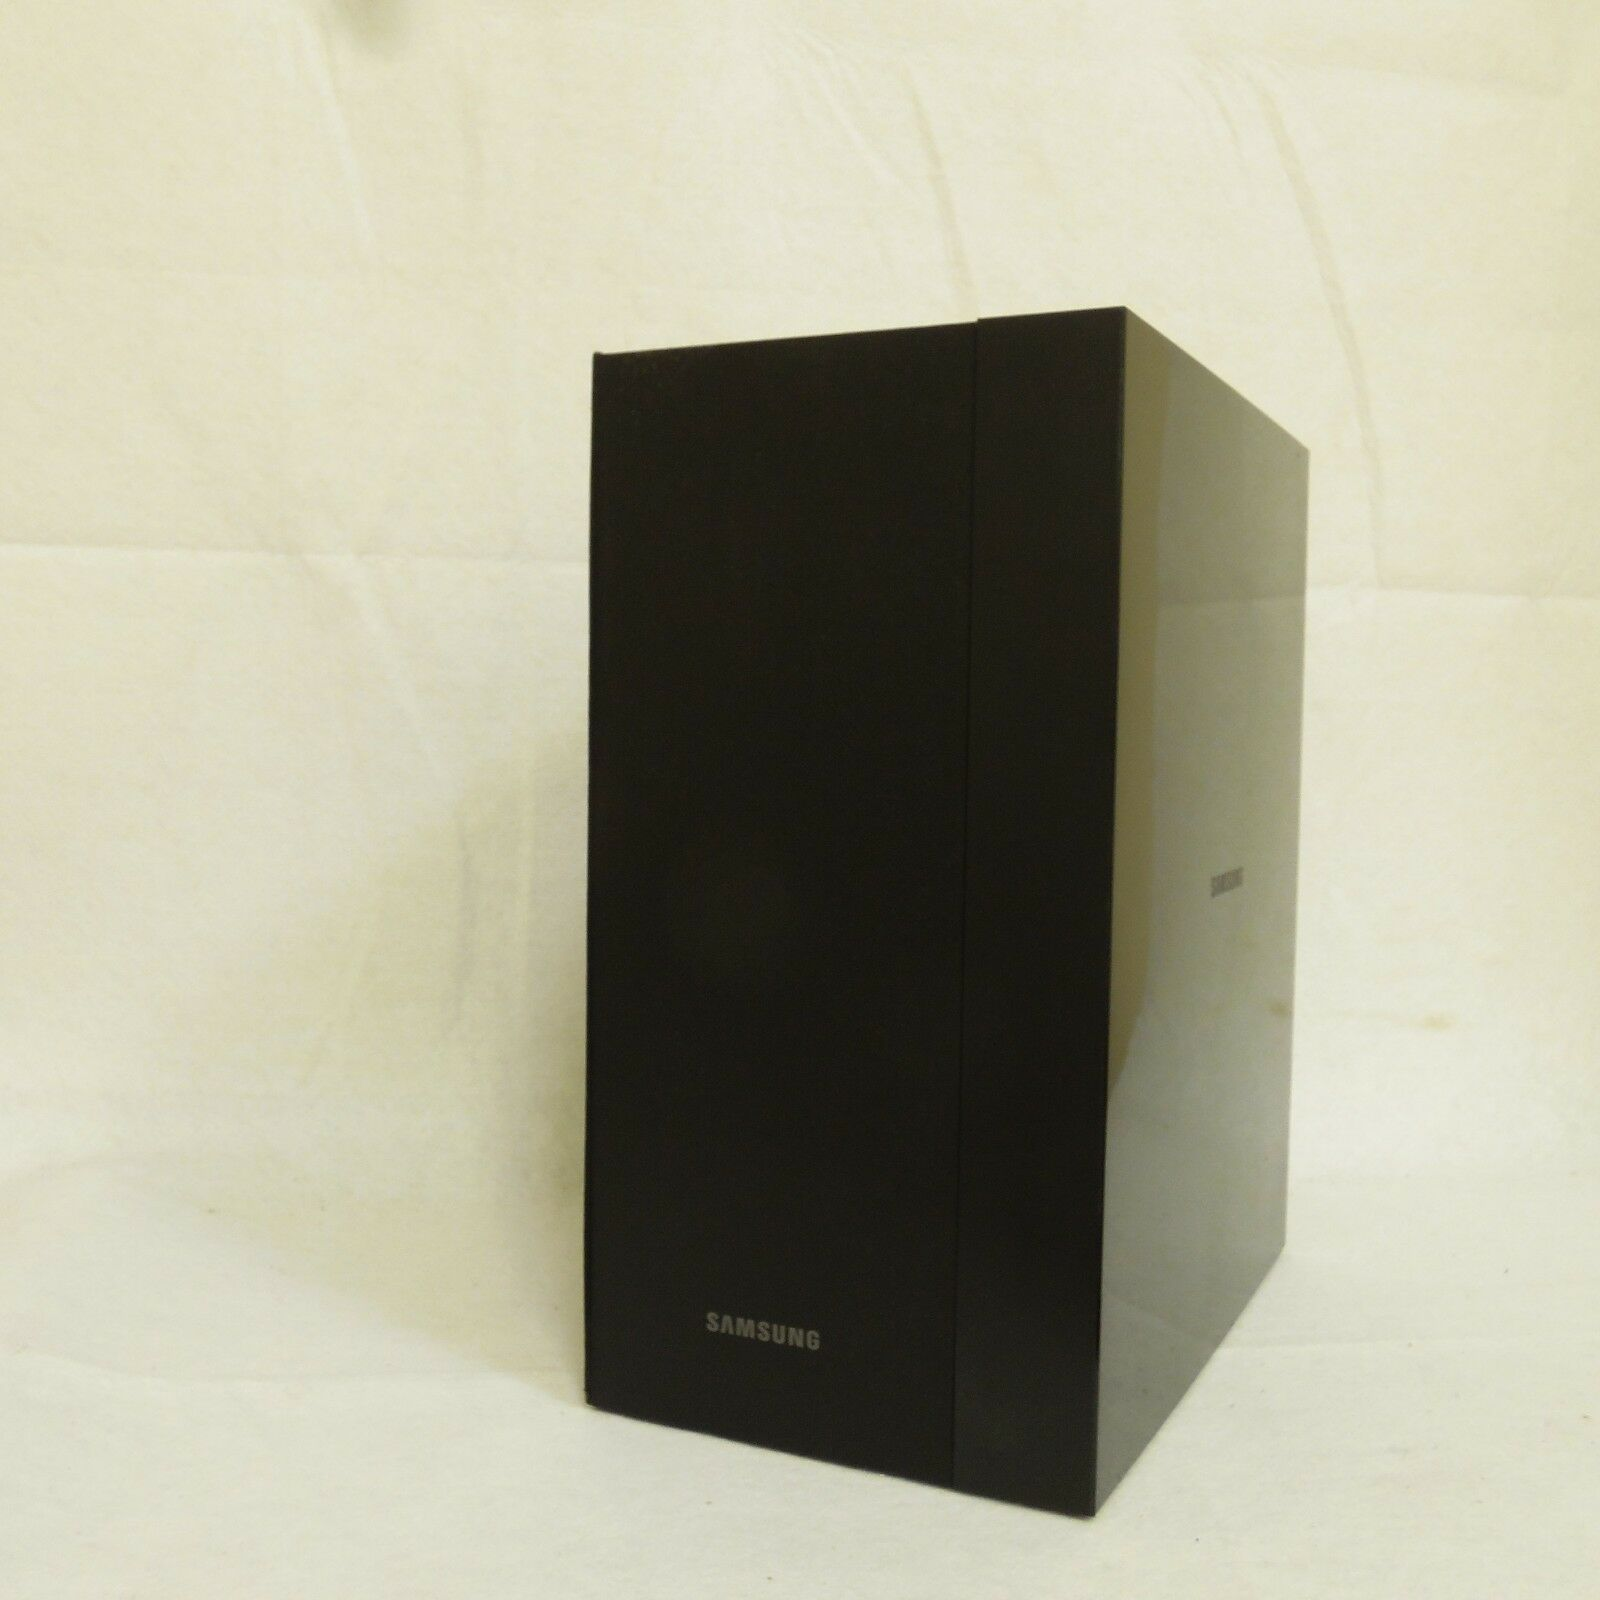 Samsung PS-WK450 Subwoofer FOR PARTS